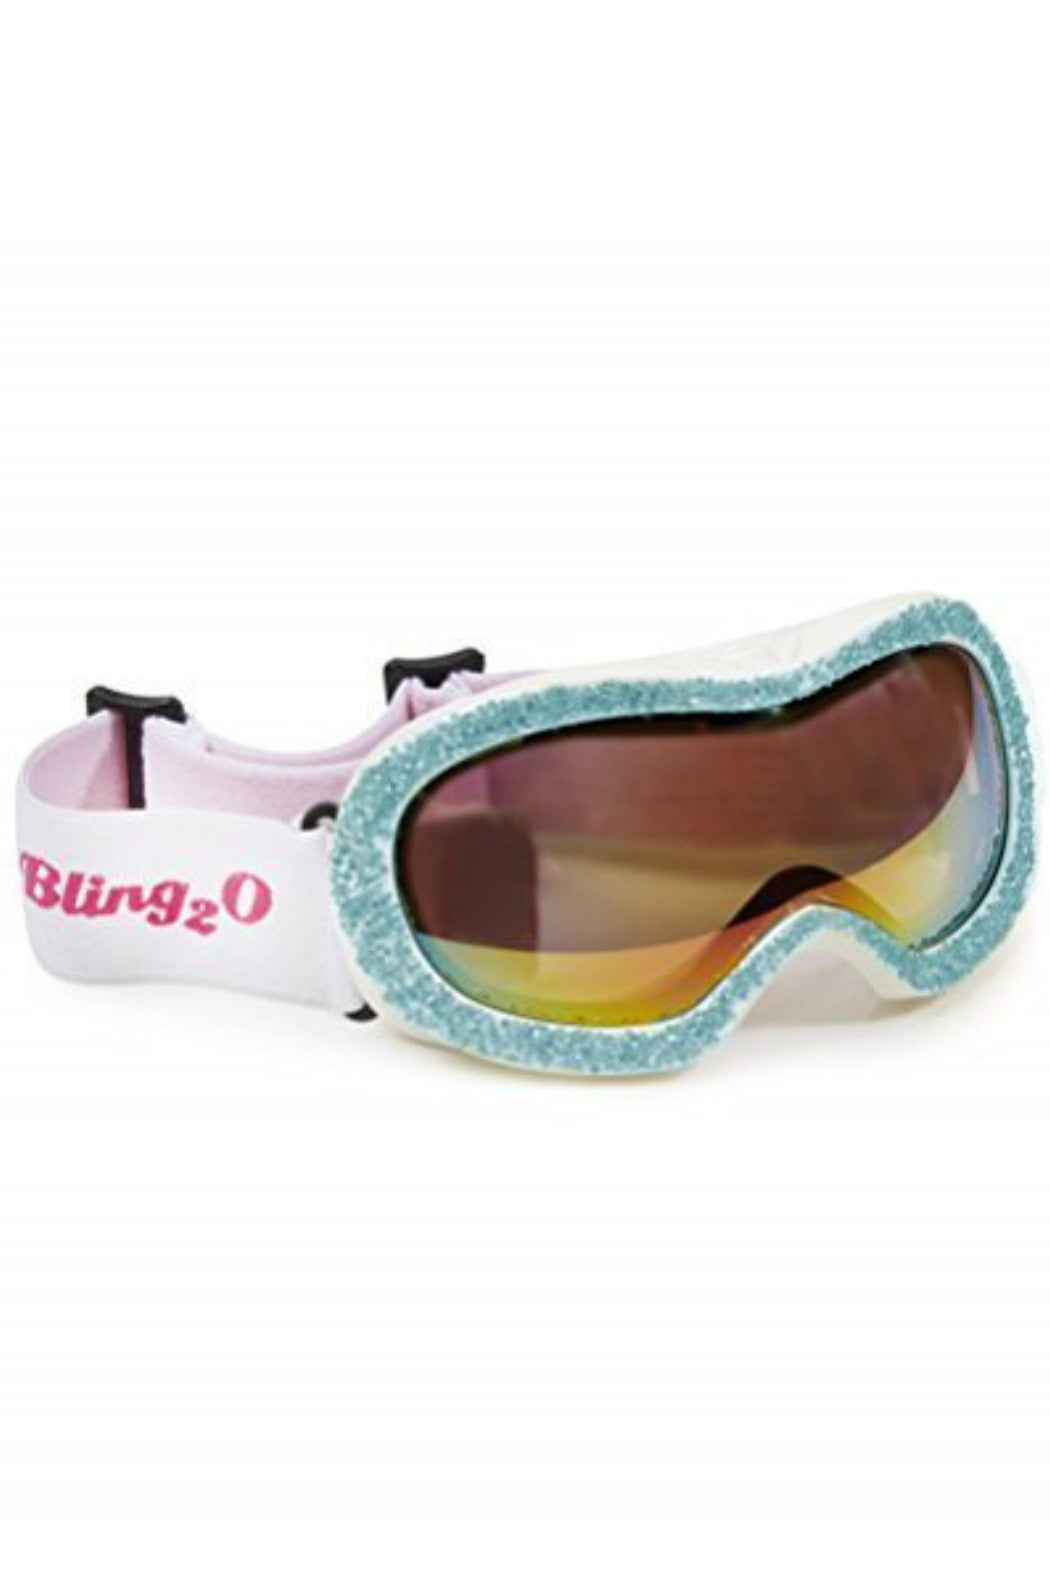 Blue Tiny Ice Snow Goggles - R+D Hipster Emporium | Womens & Mens Clothing